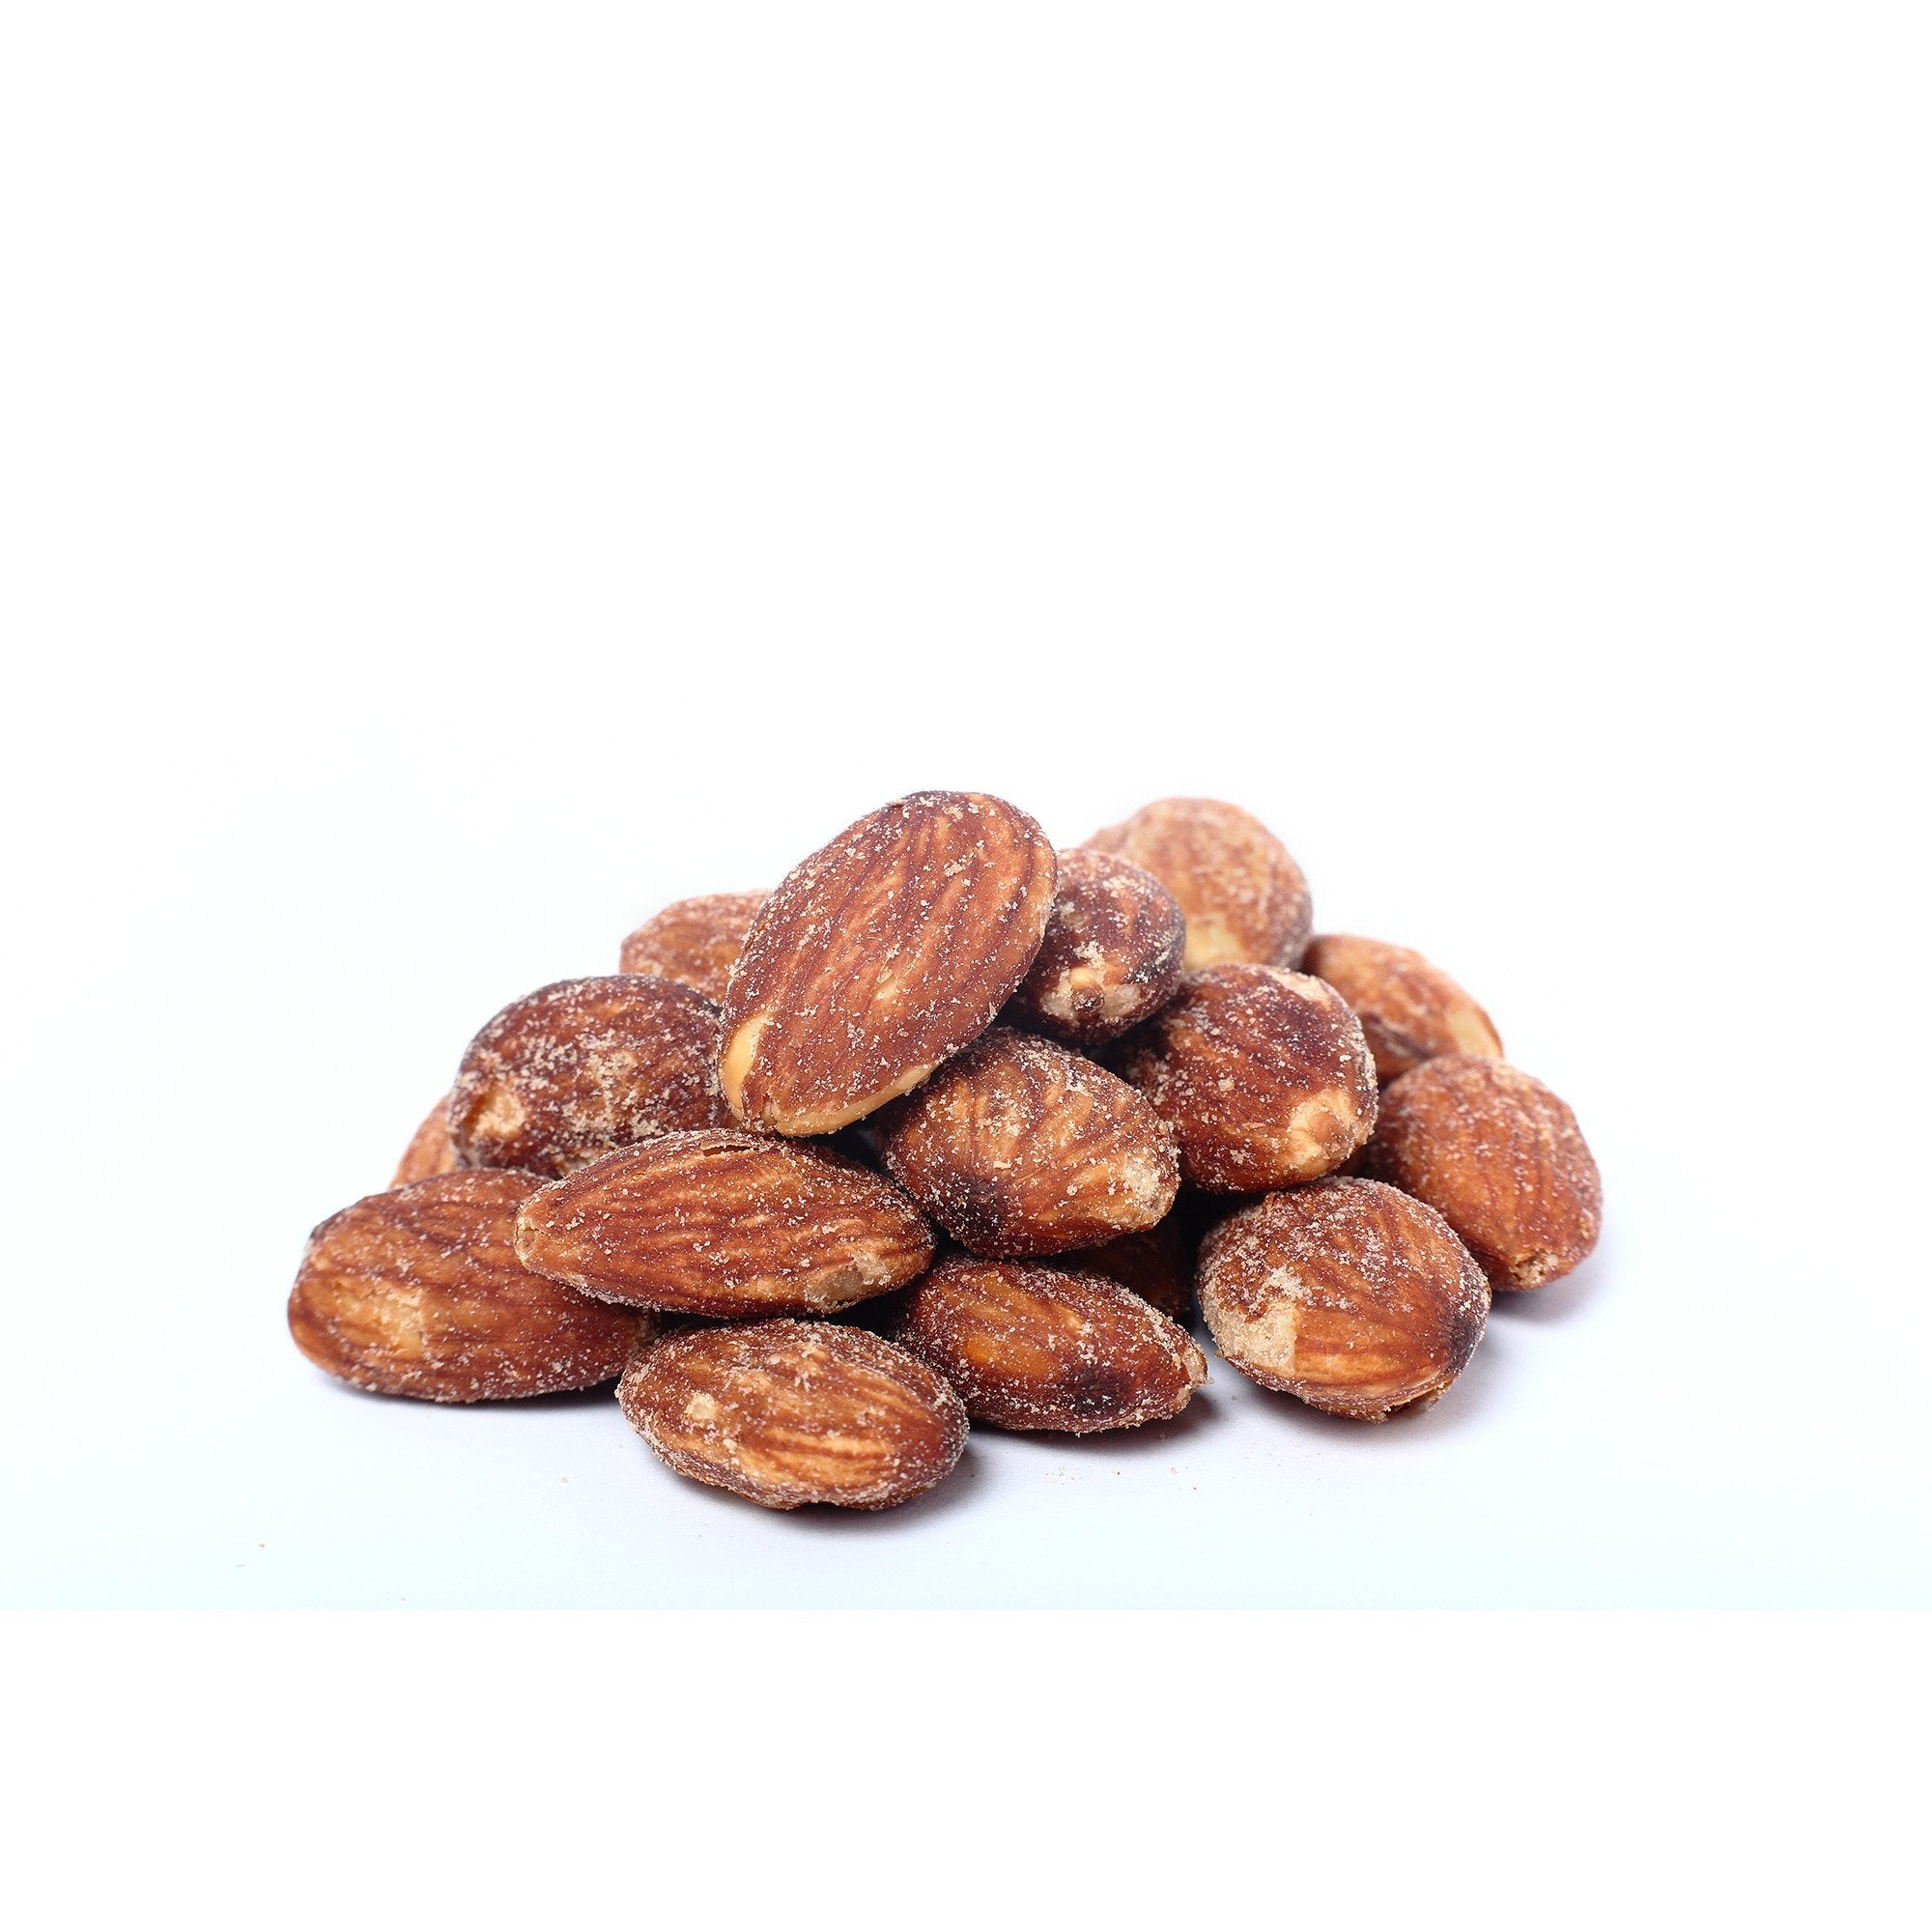 Roasted & Salted Almonds 6 oz - 824S